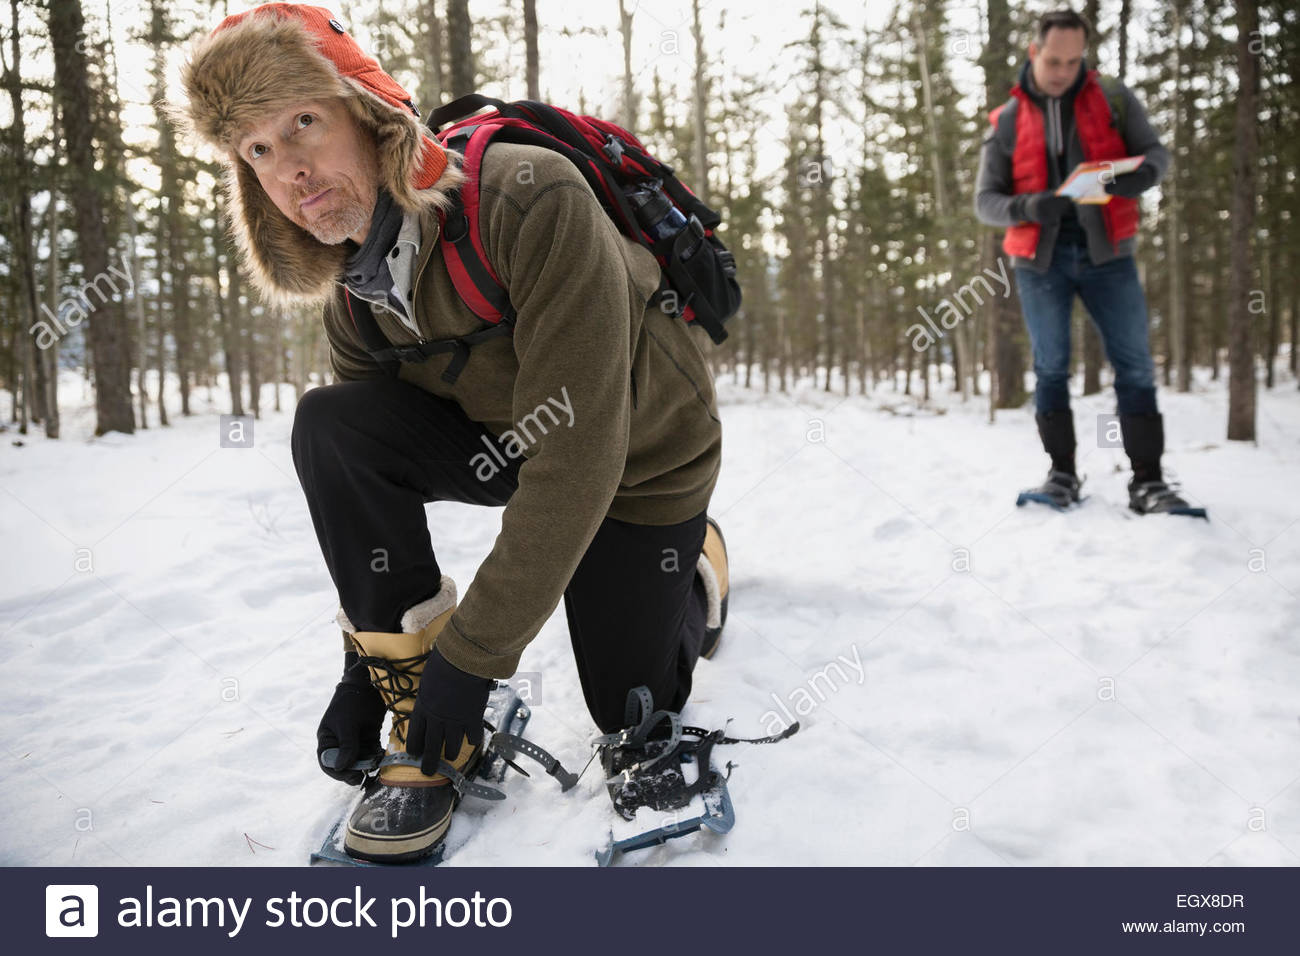 Man putting on snowshoes in snowy woods - Stock Image